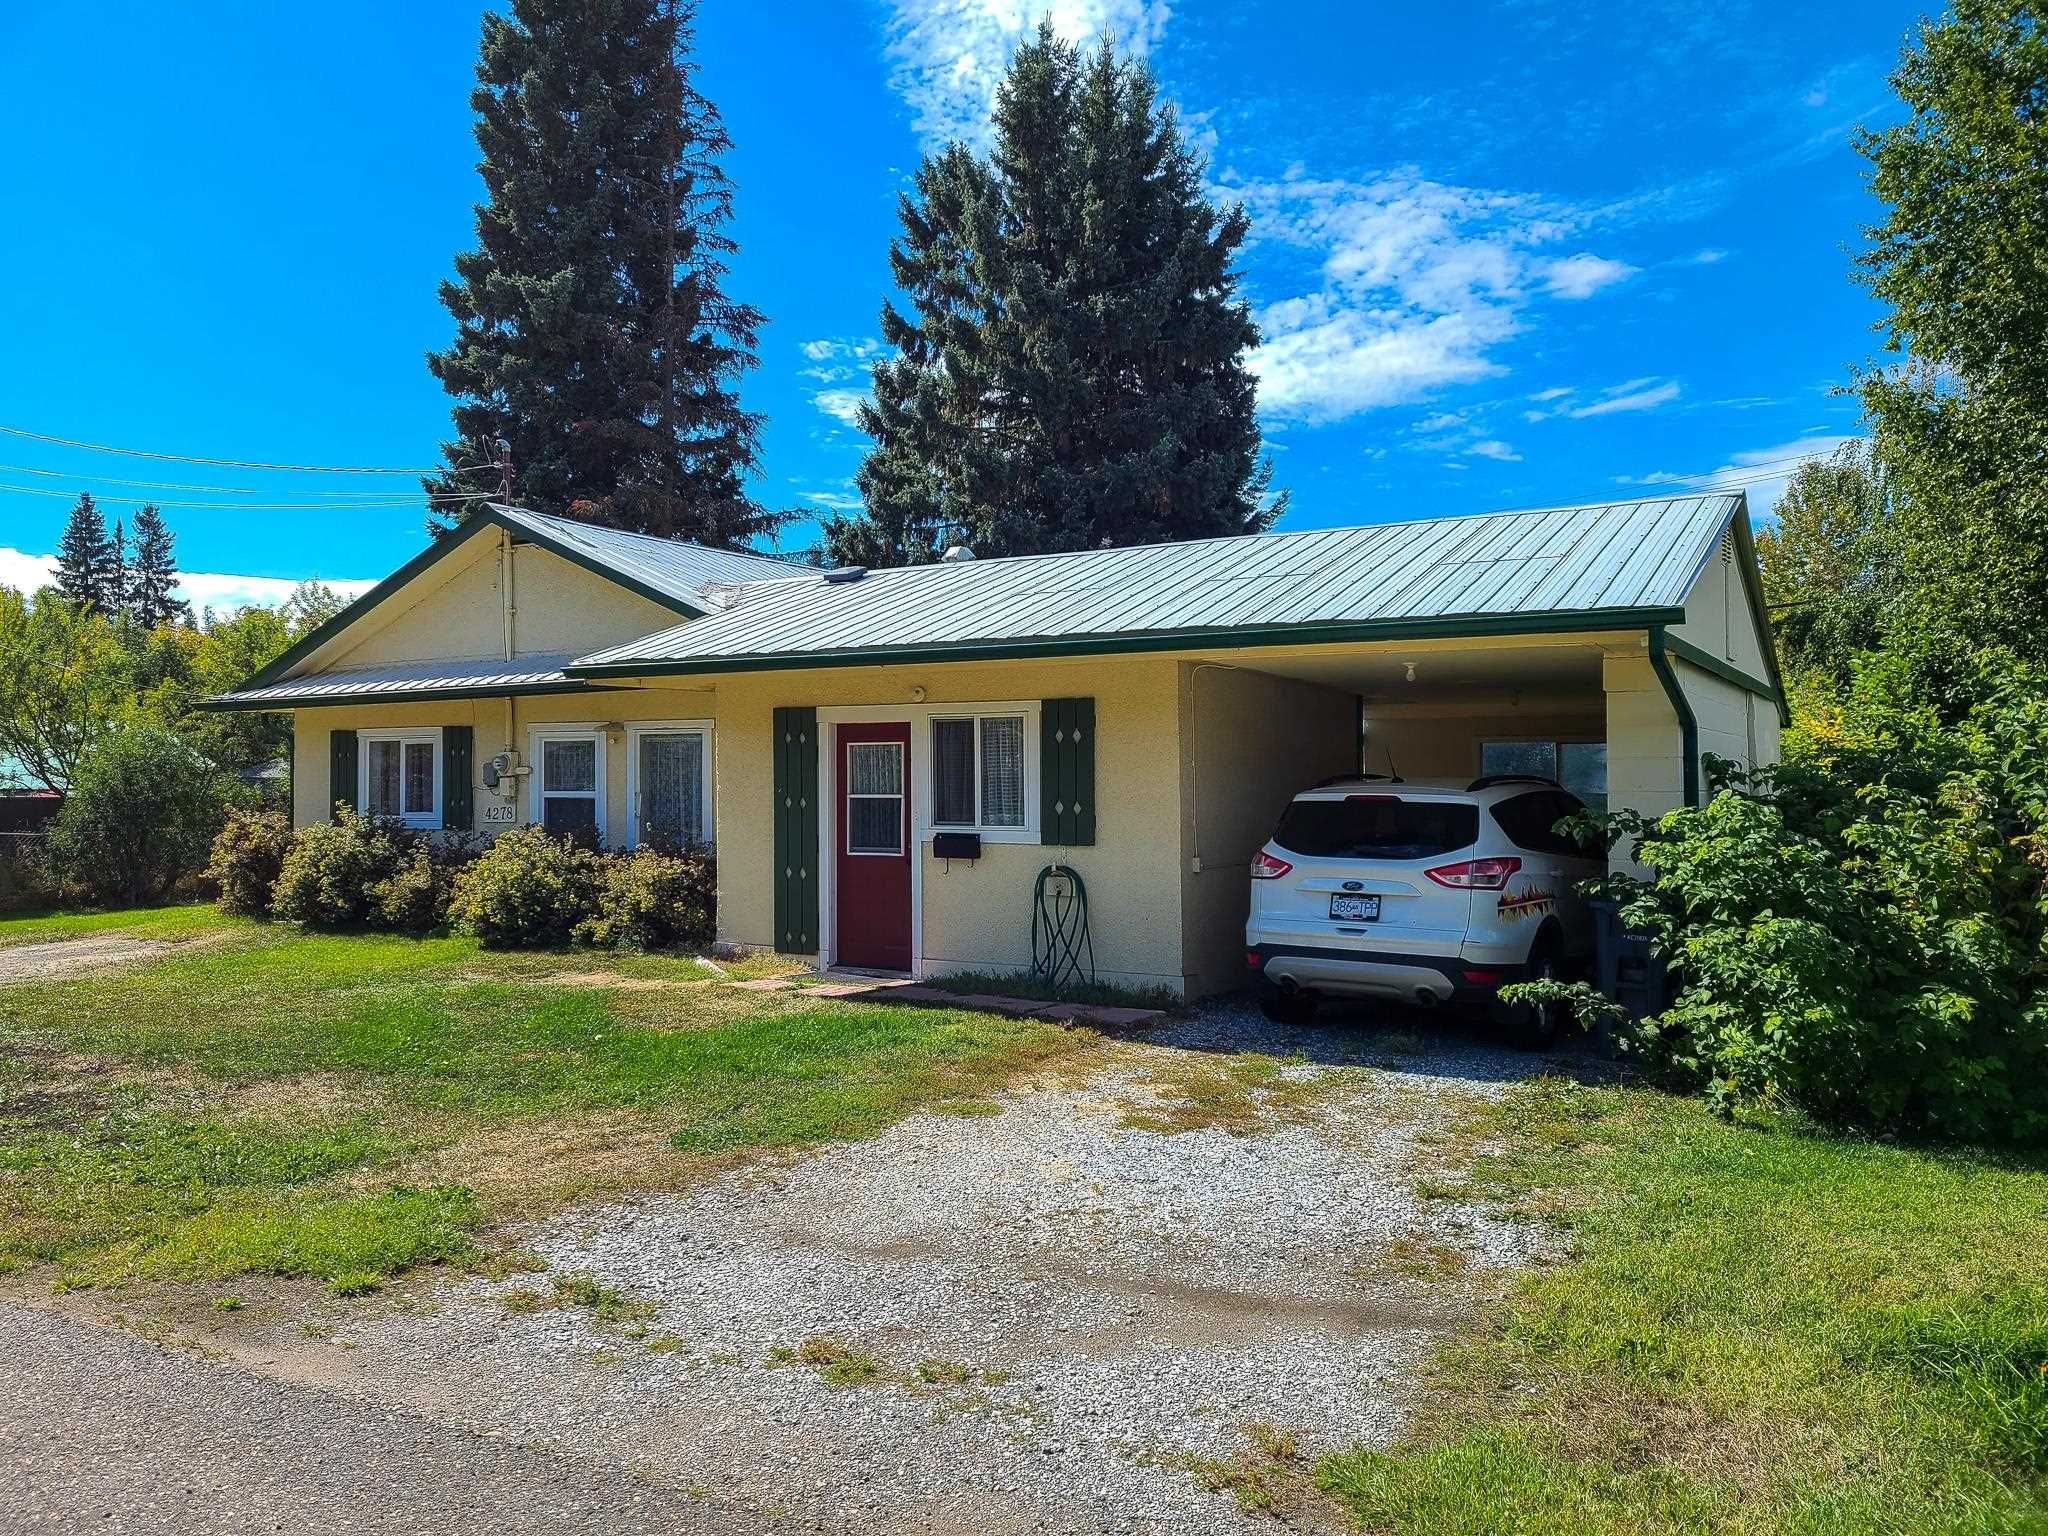 """Main Photo: 4278 FEHR Road in Prince George: Hart Highway House for sale in """"HART HIGHWAY"""" (PG City North (Zone 73))  : MLS®# R2615565"""